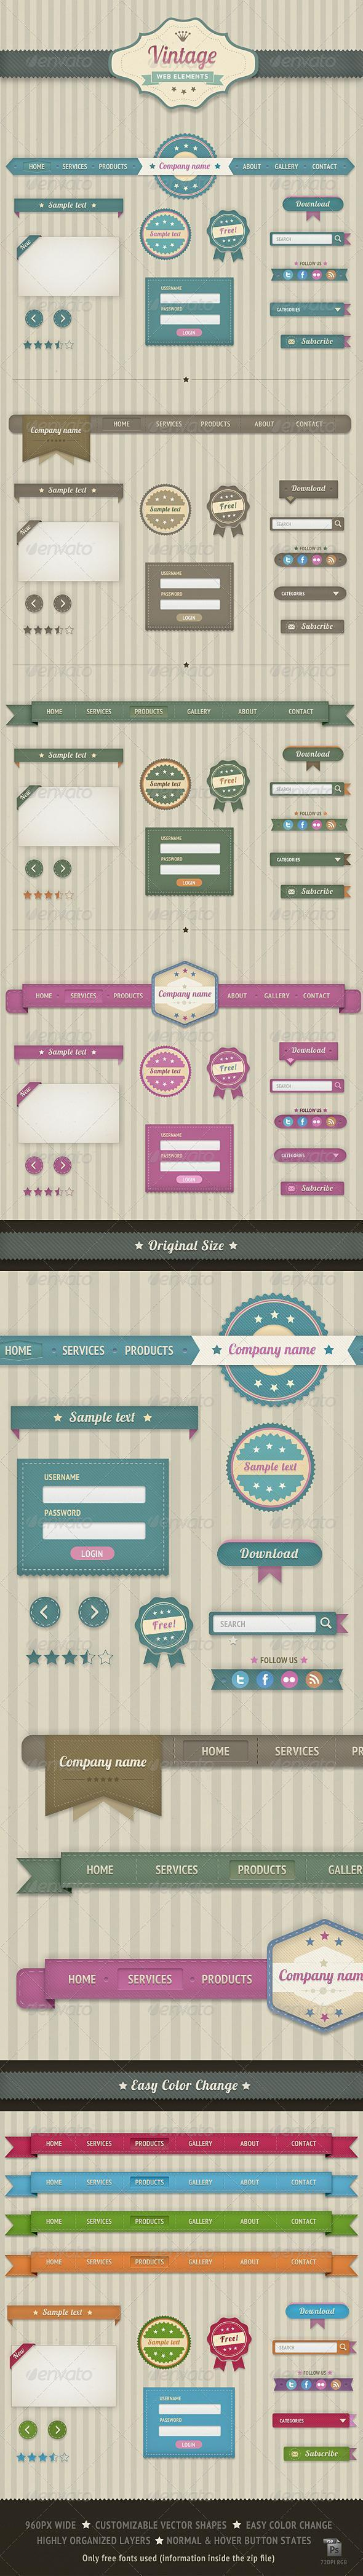 Vintage Web Elements Layered PSD